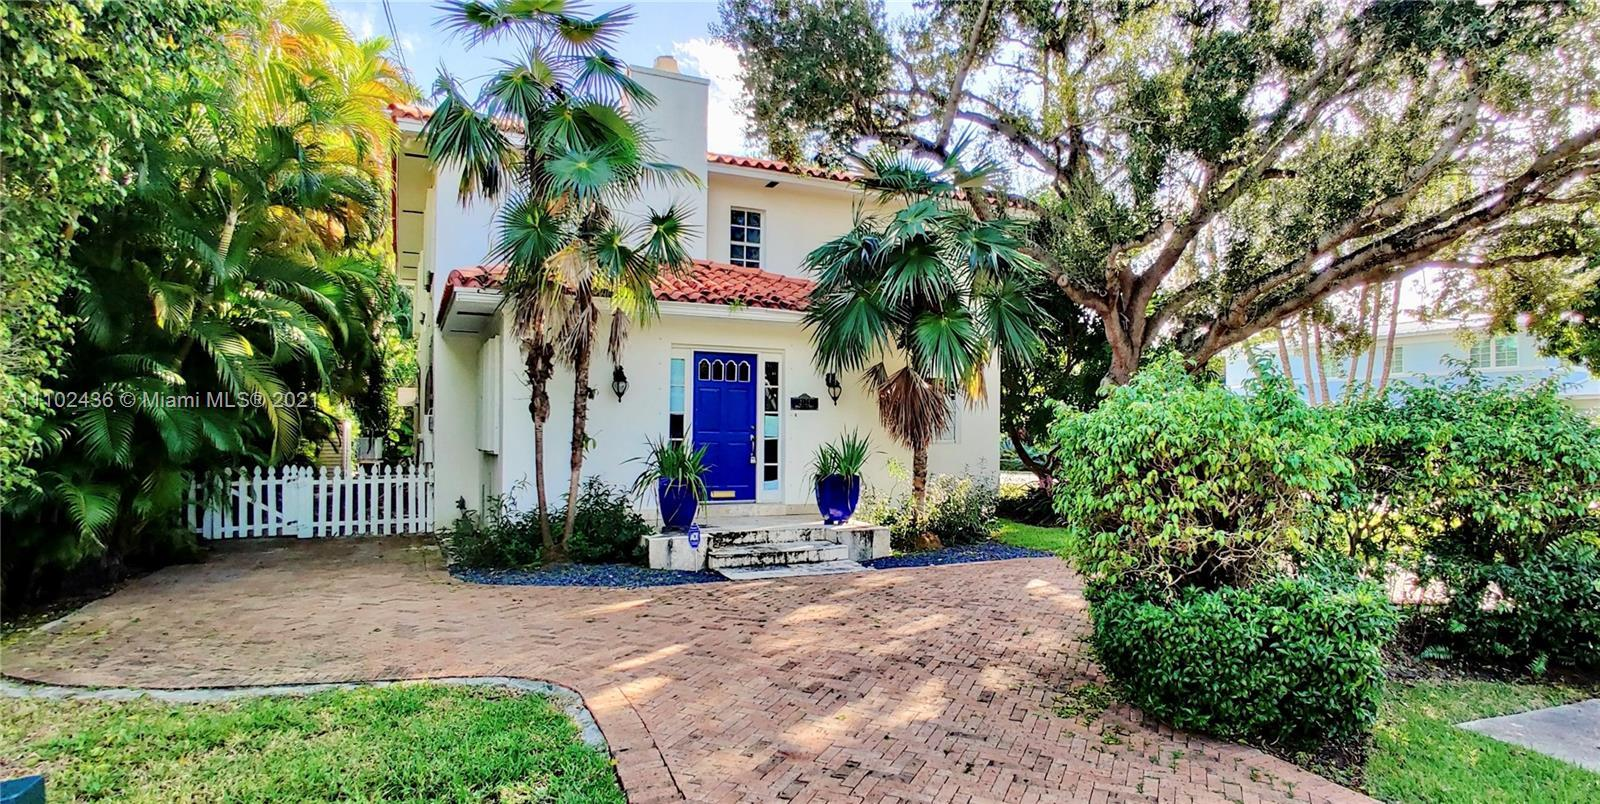 WALK to Lincoln Road & Sunset Harbour from this Premier Location home on Sunset Island #4.  Pending